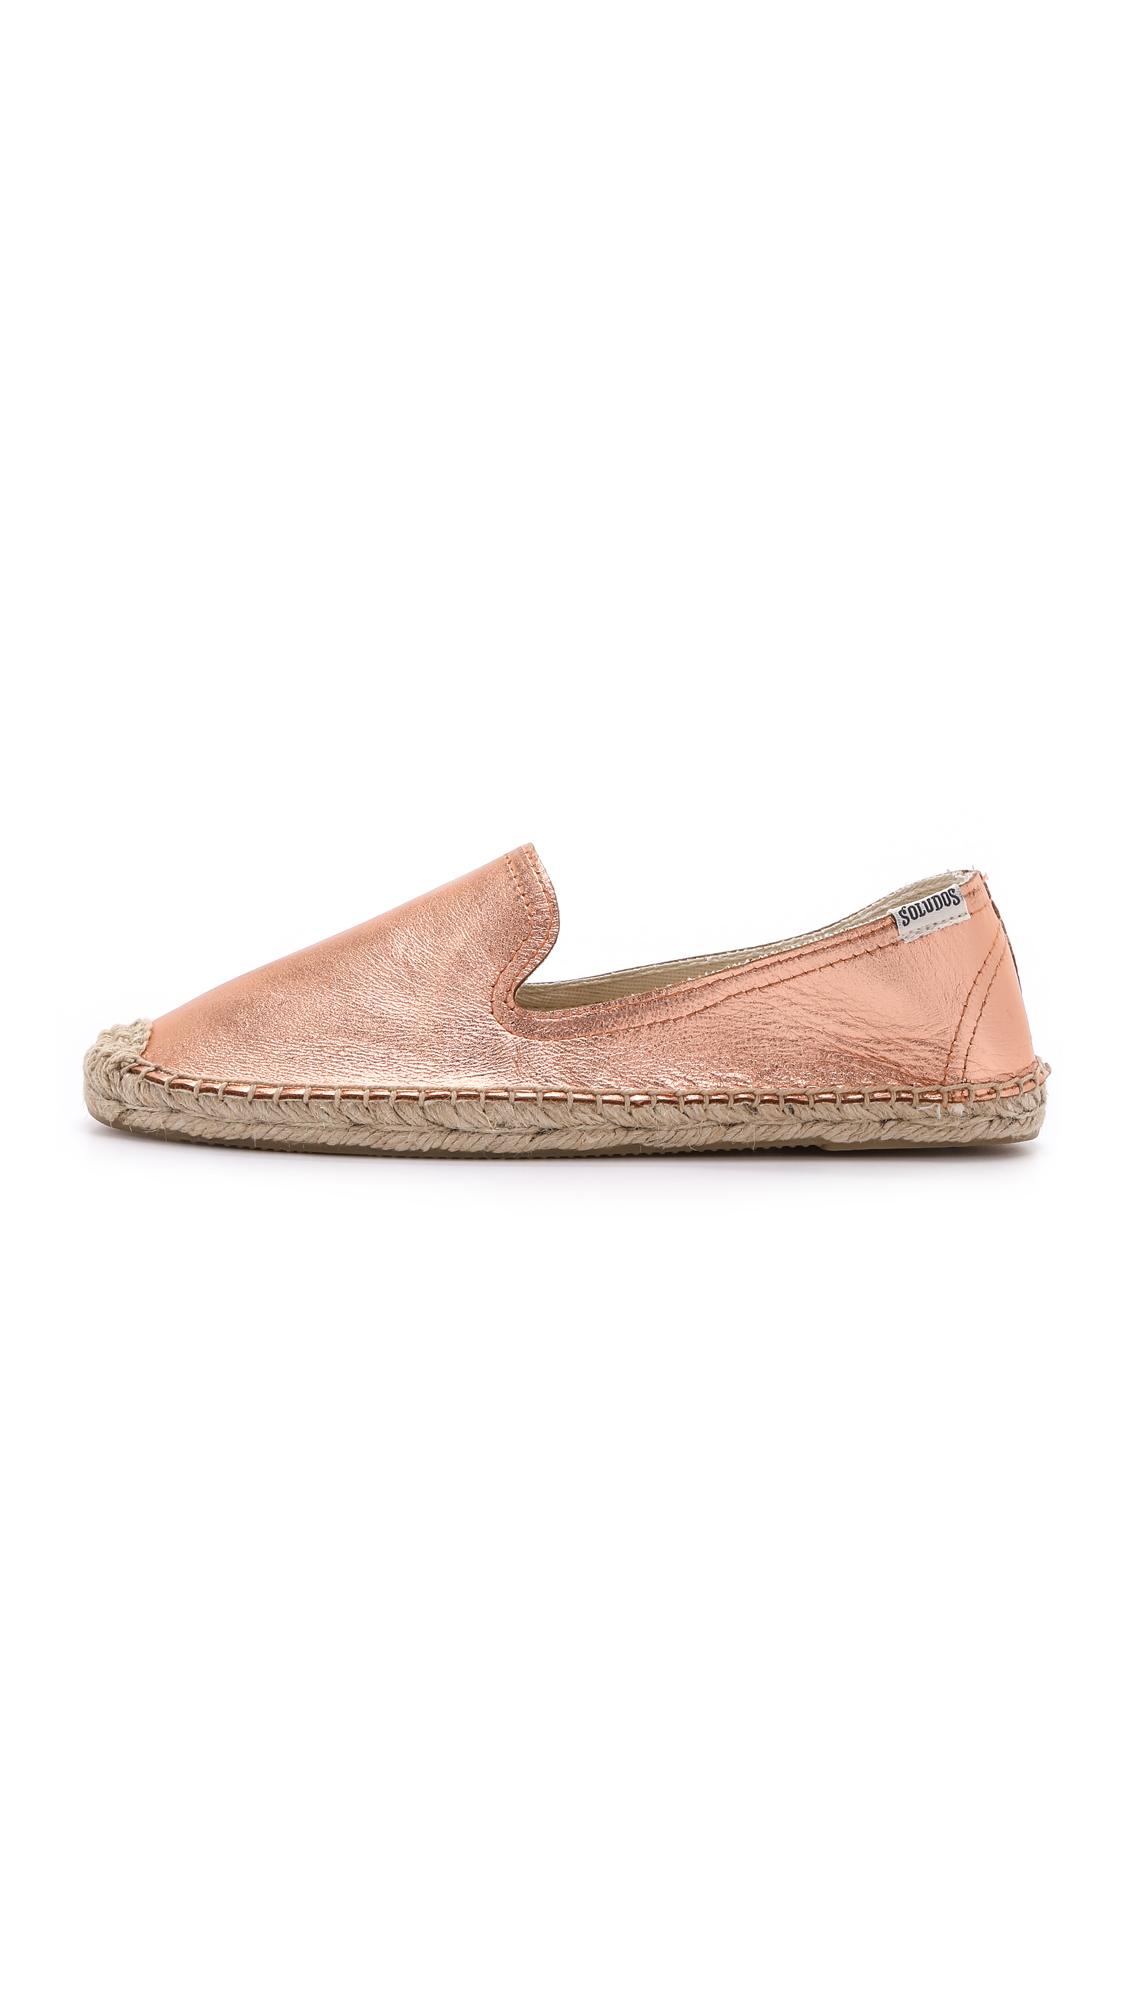 7608d62e8e2 Soludos Metallic Leather Smoking Slipper Espadrilles